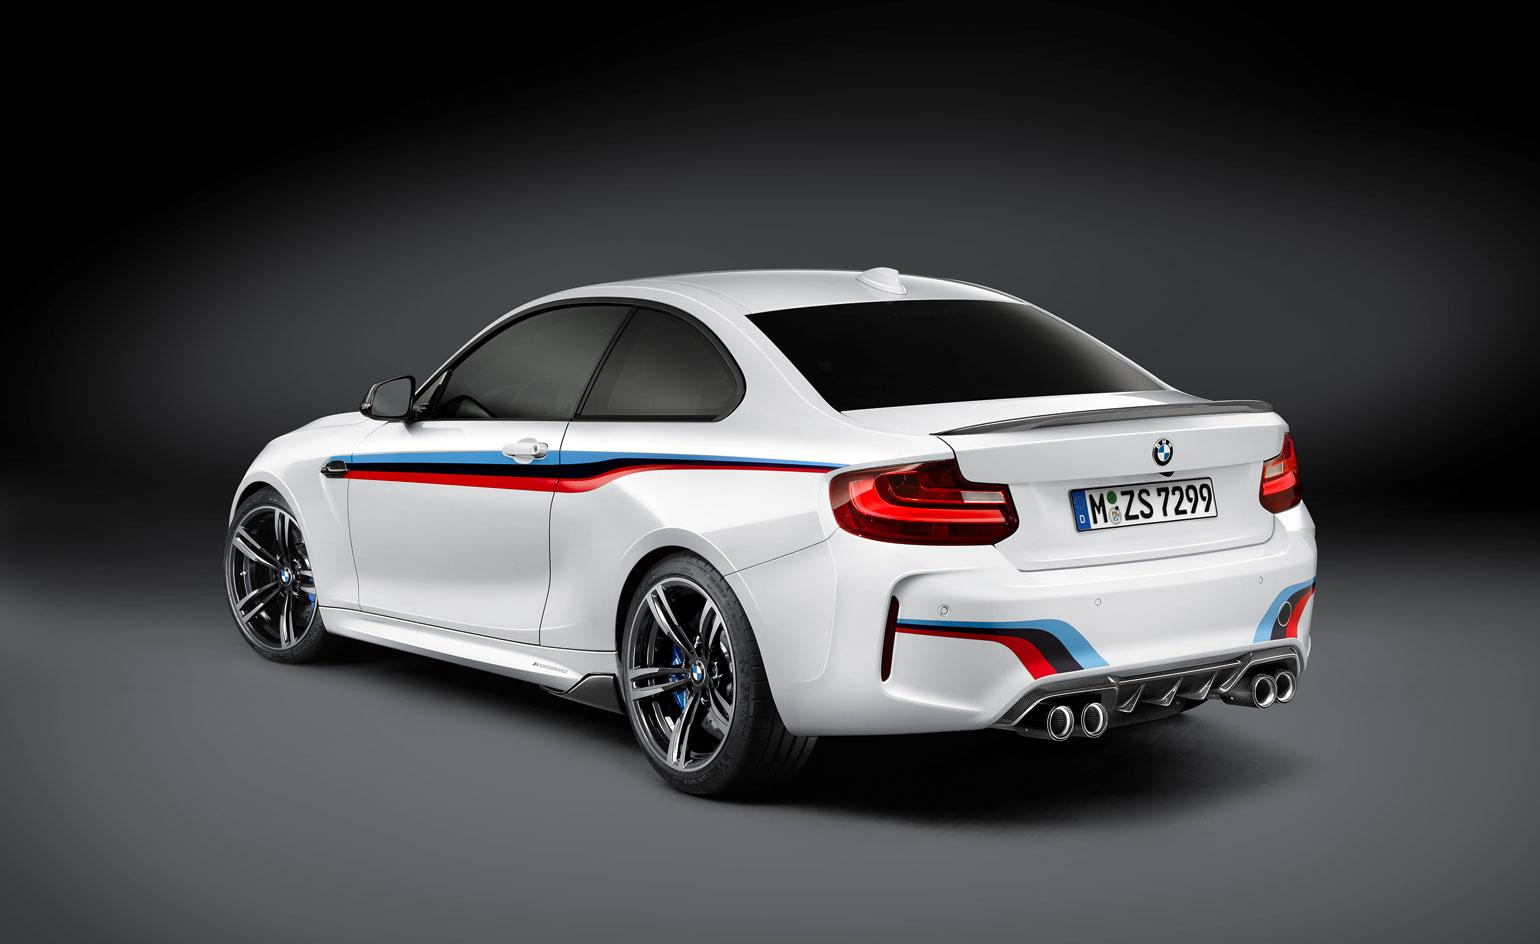 BMW's newest M2 Coupé is the ultimate sports car jewel ...